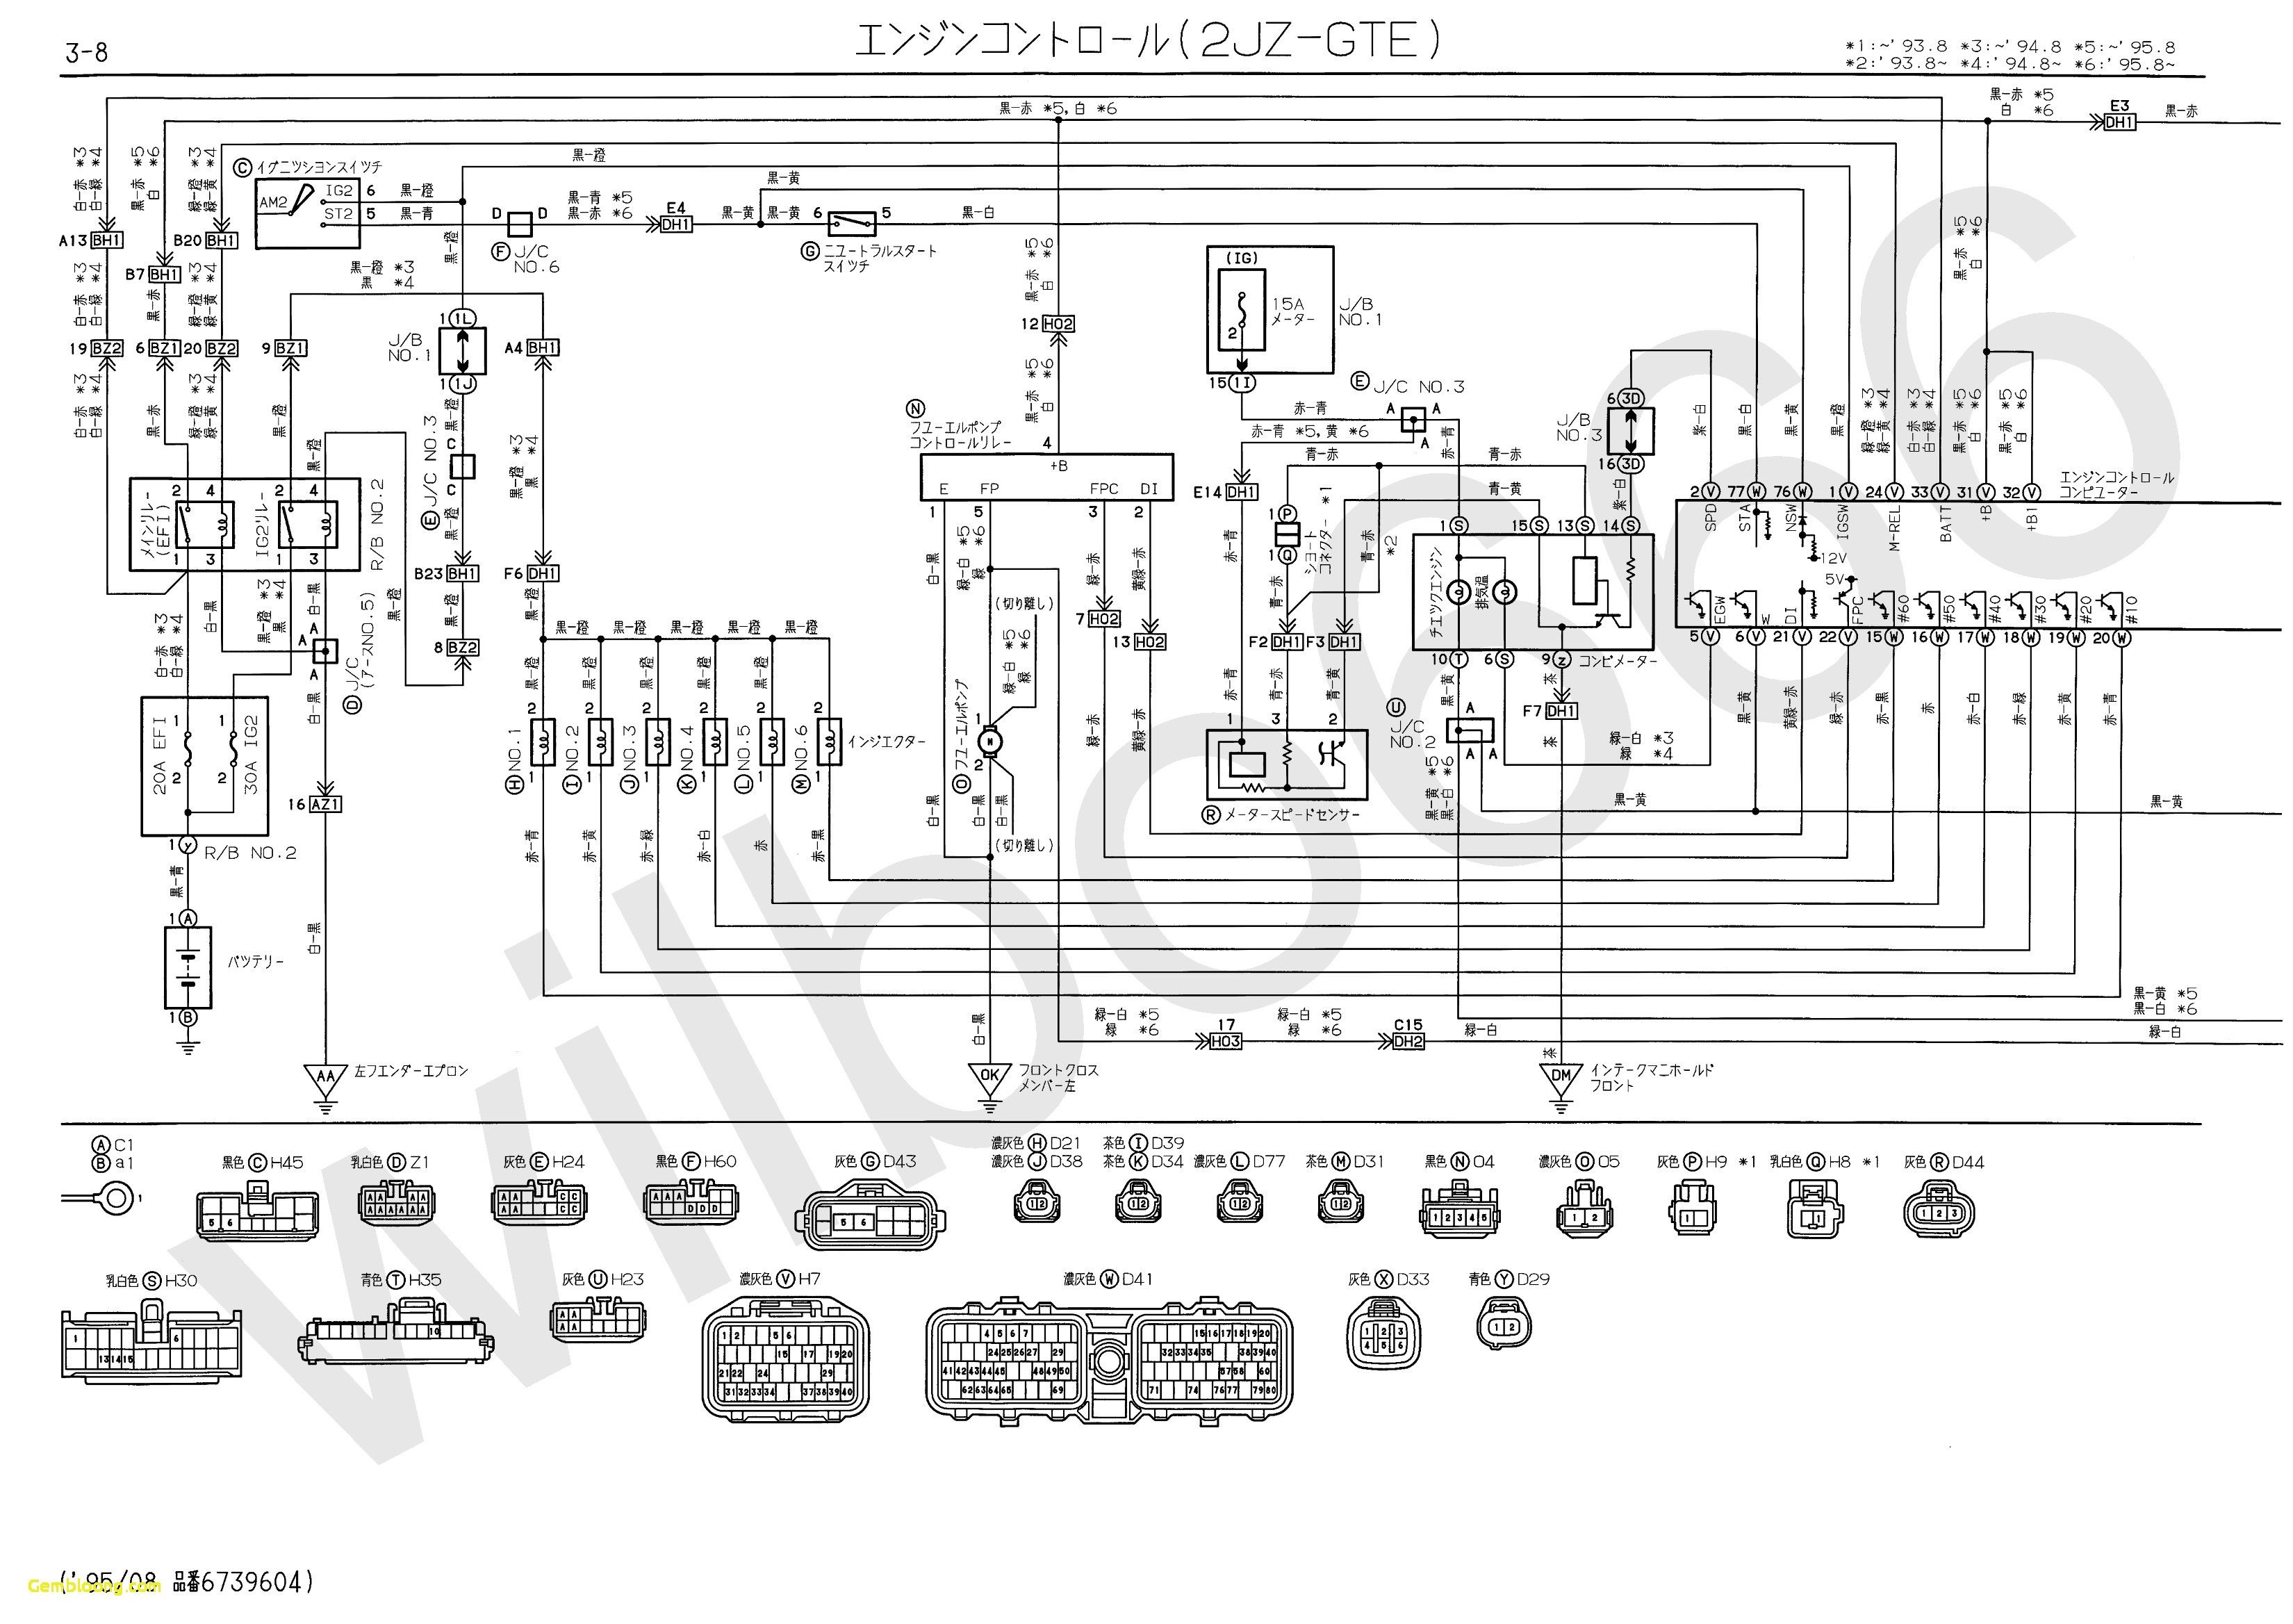 92 Camaro Ecm Wiring Diagram